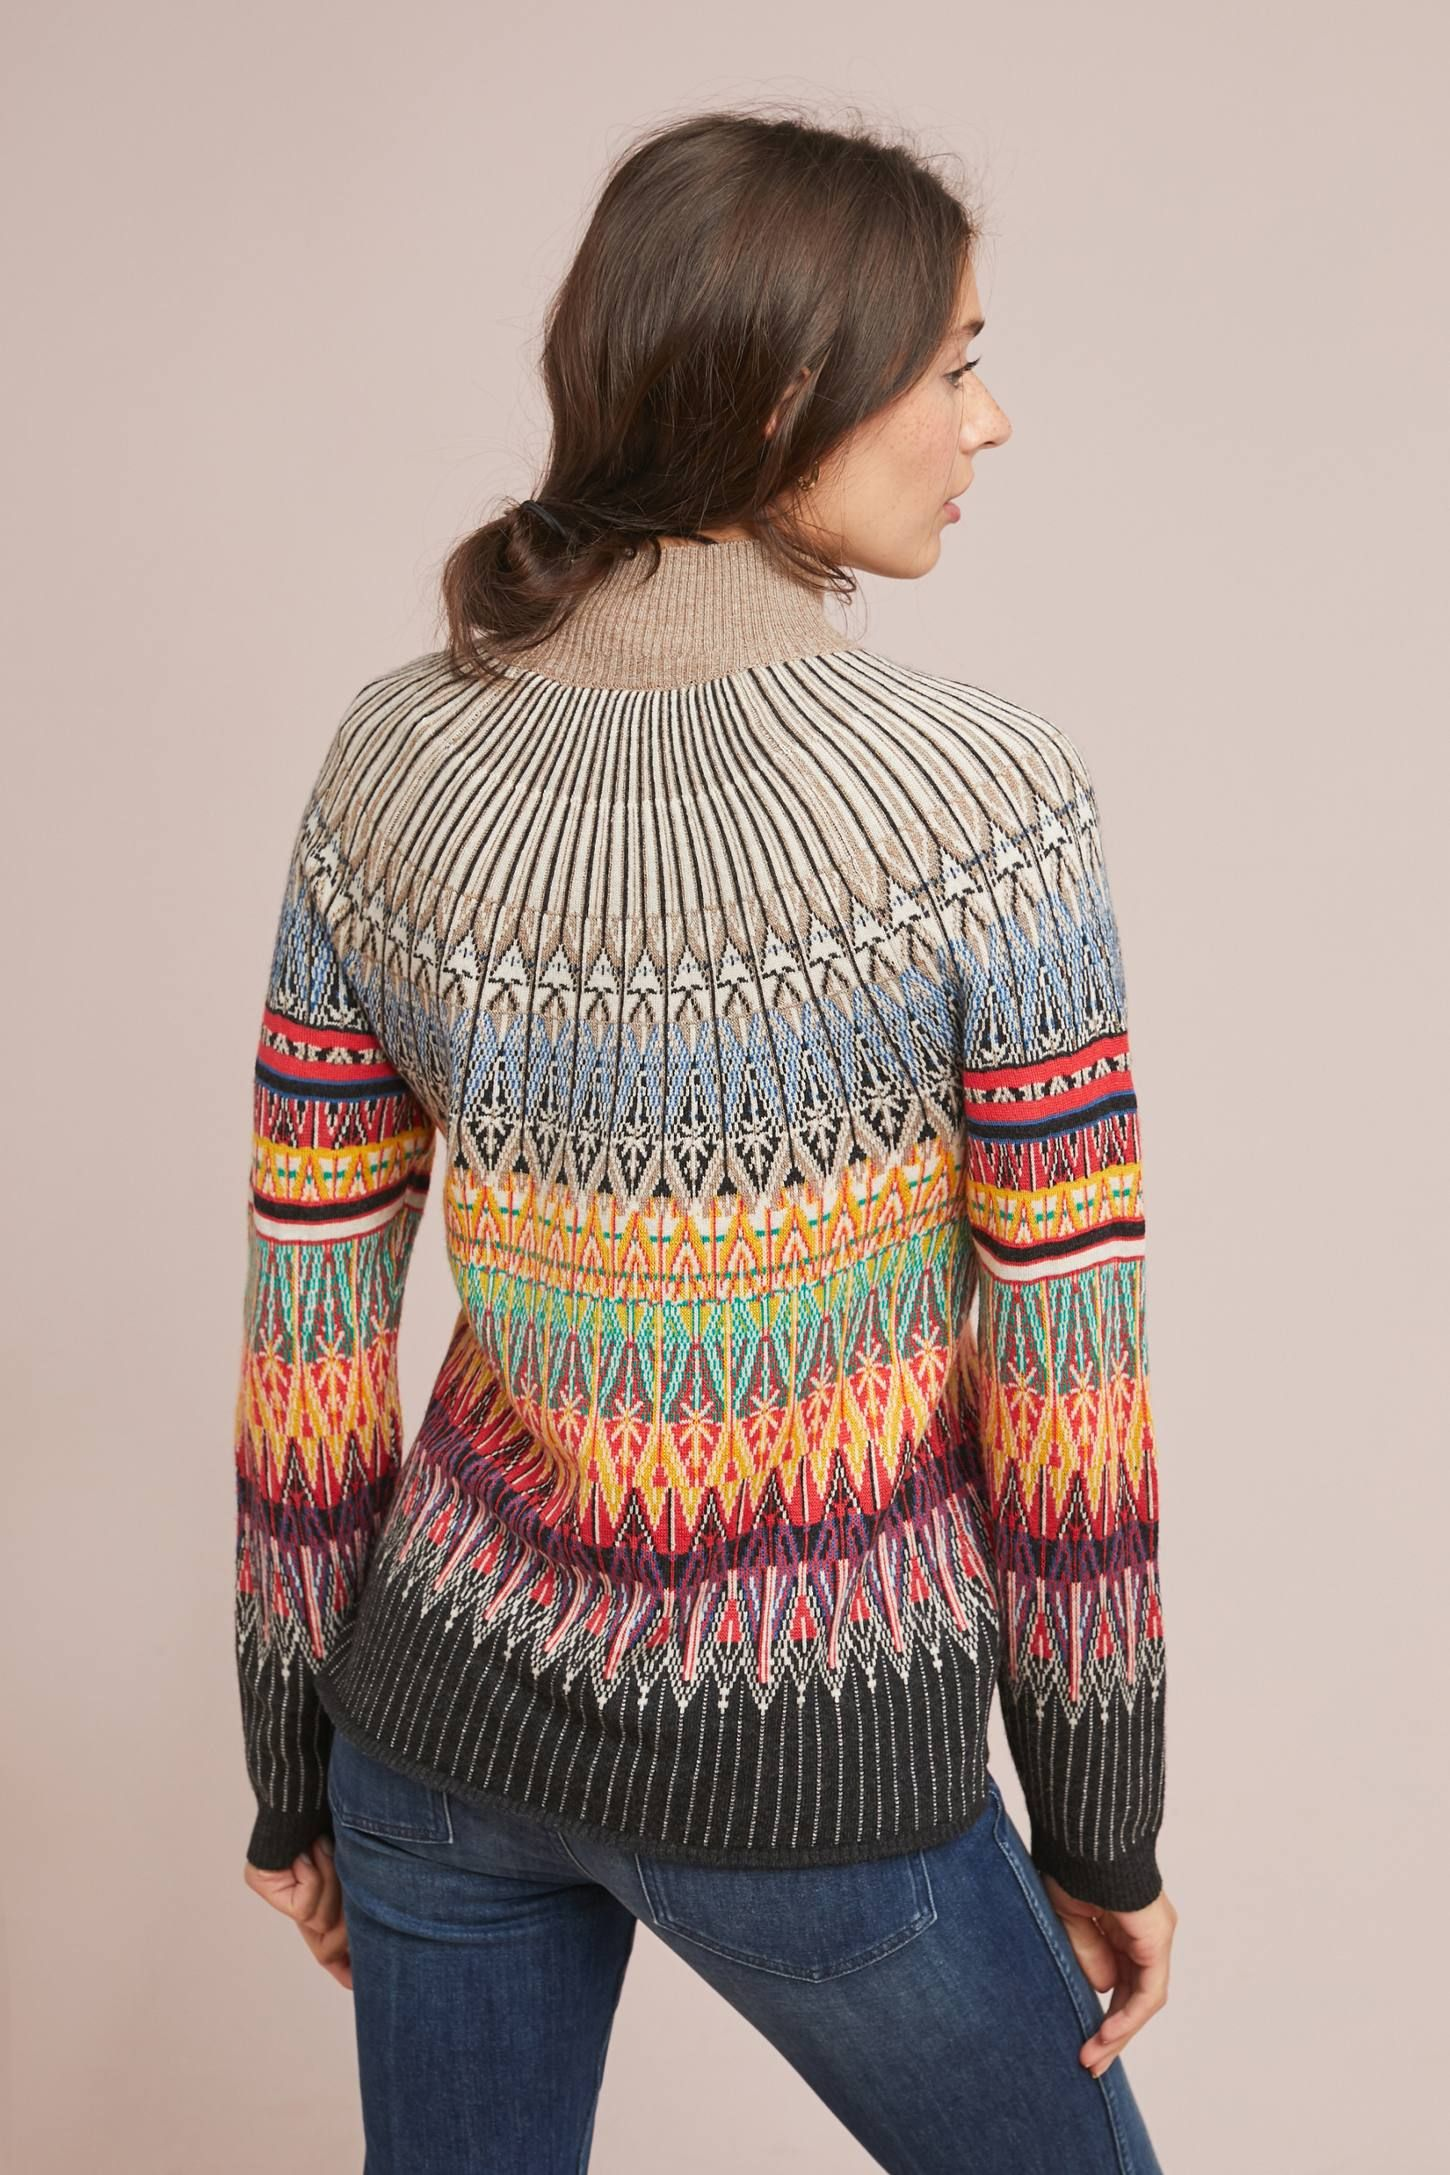 ecb54244e Prismatic Fair Isle Sweater